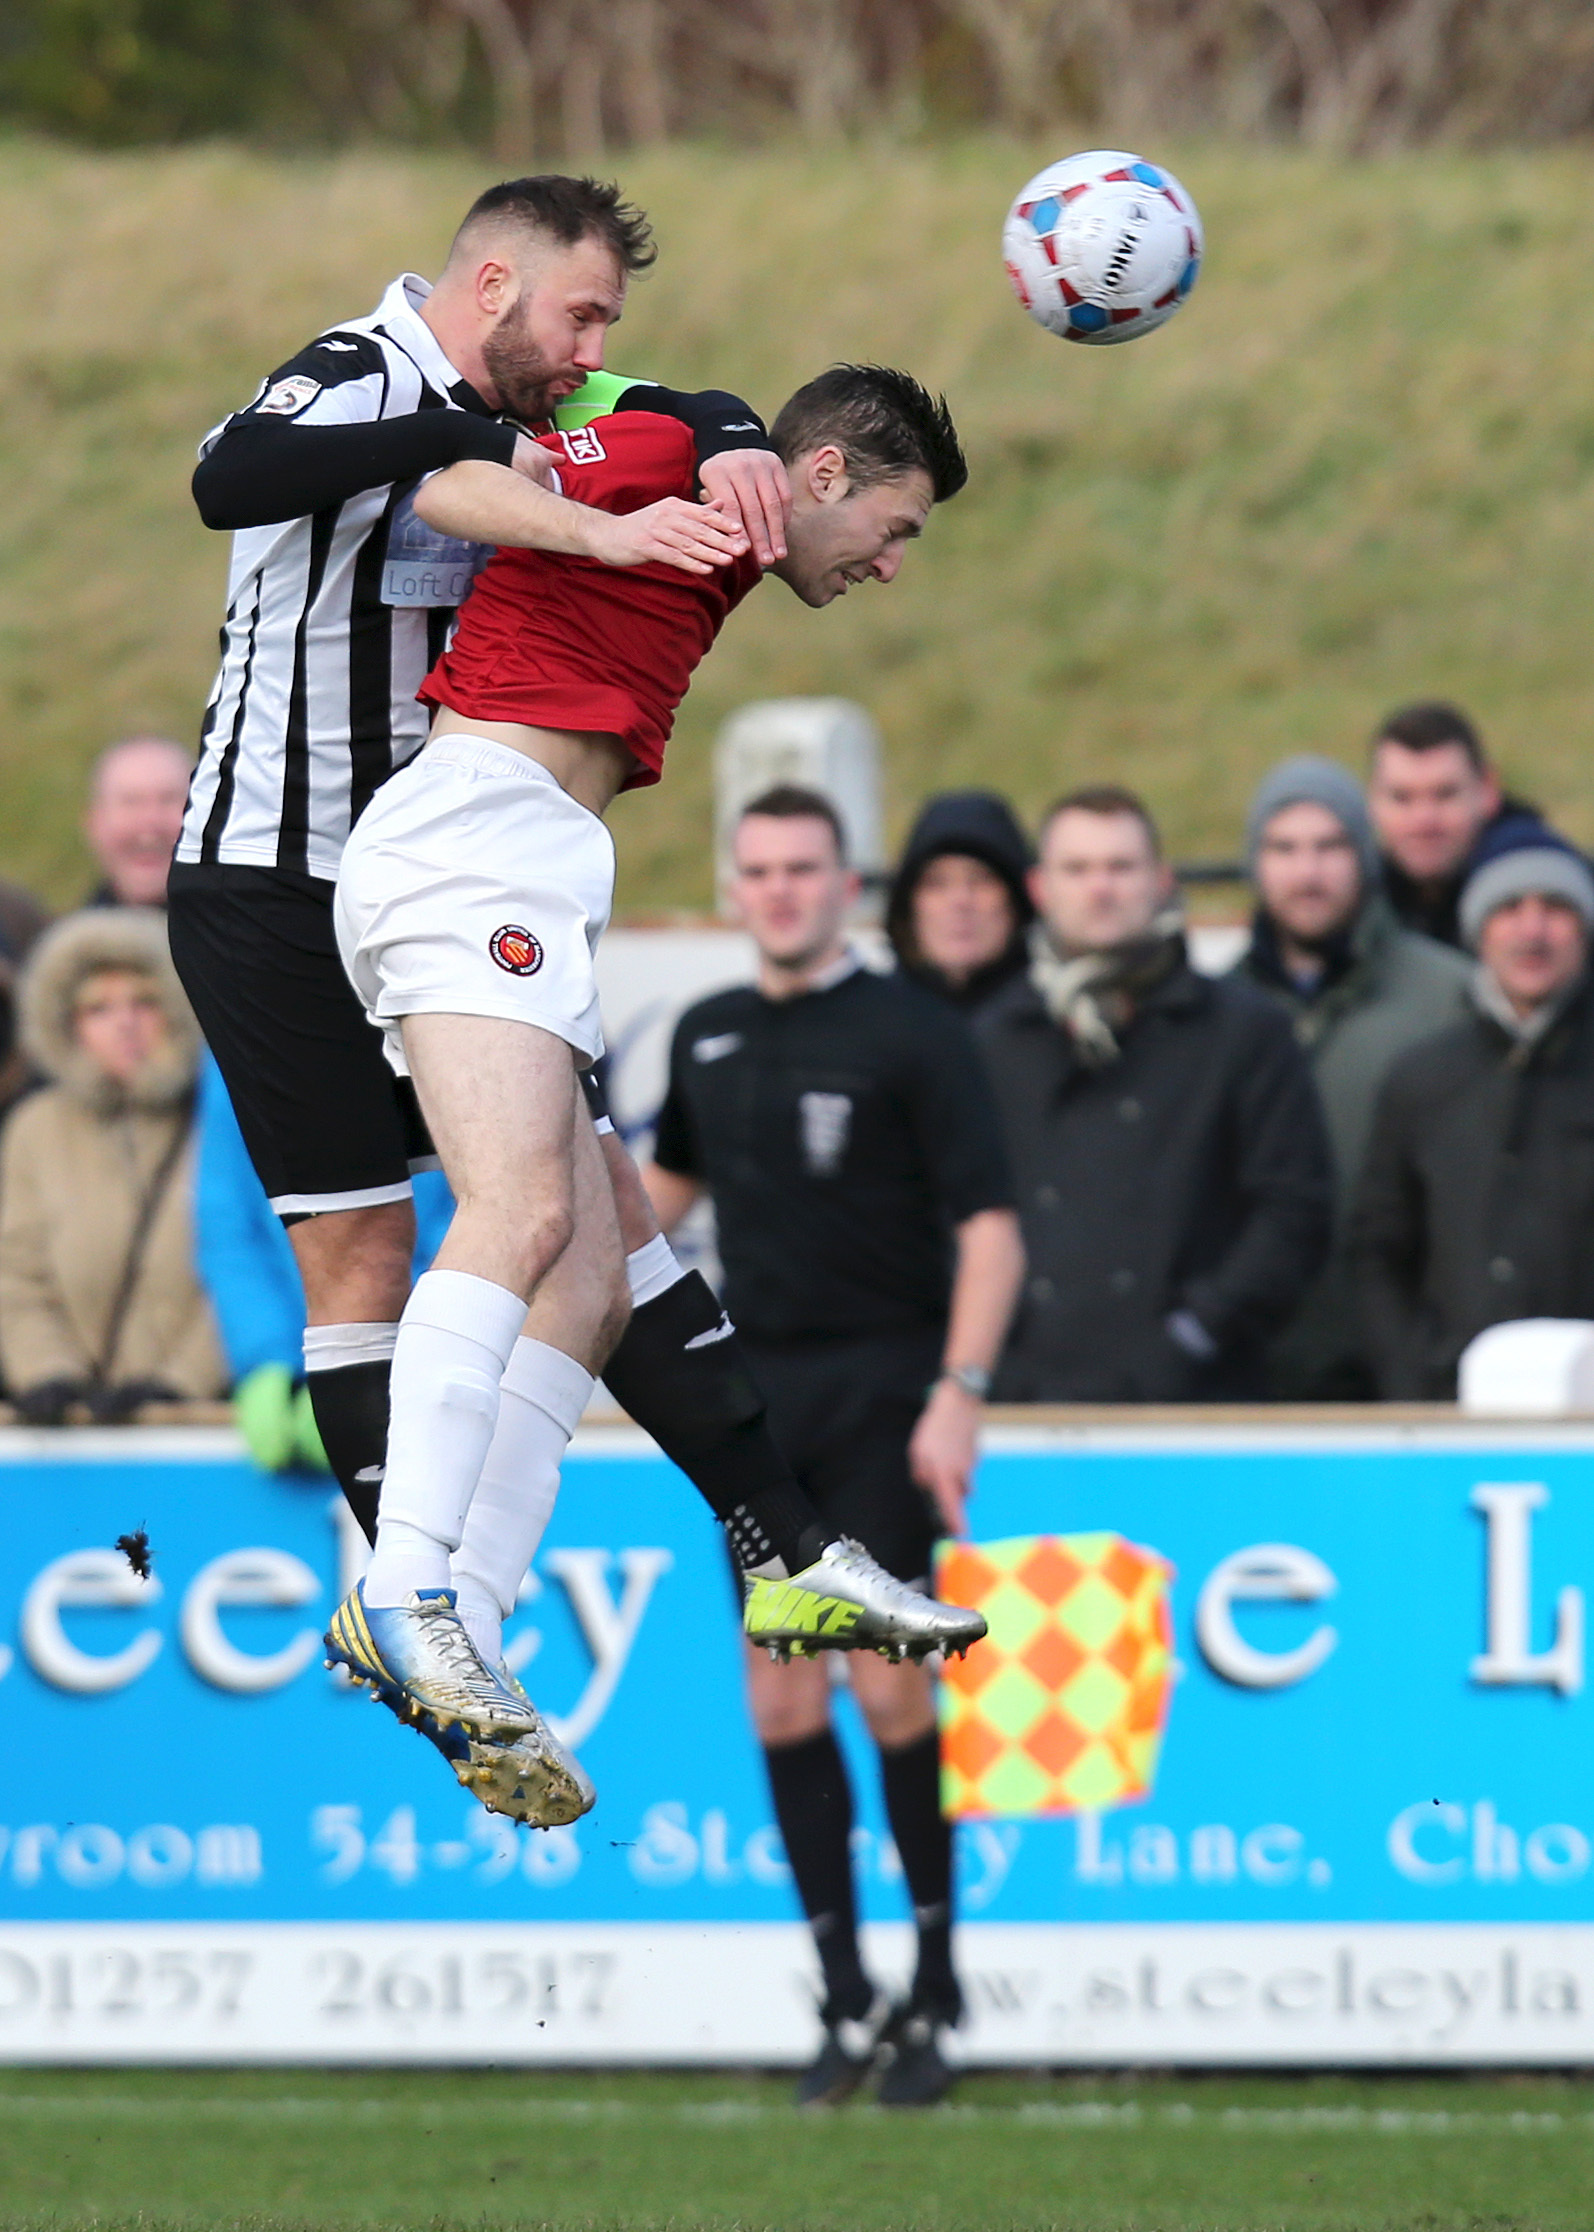 Chorley's Andy Teague in action against FC United last season